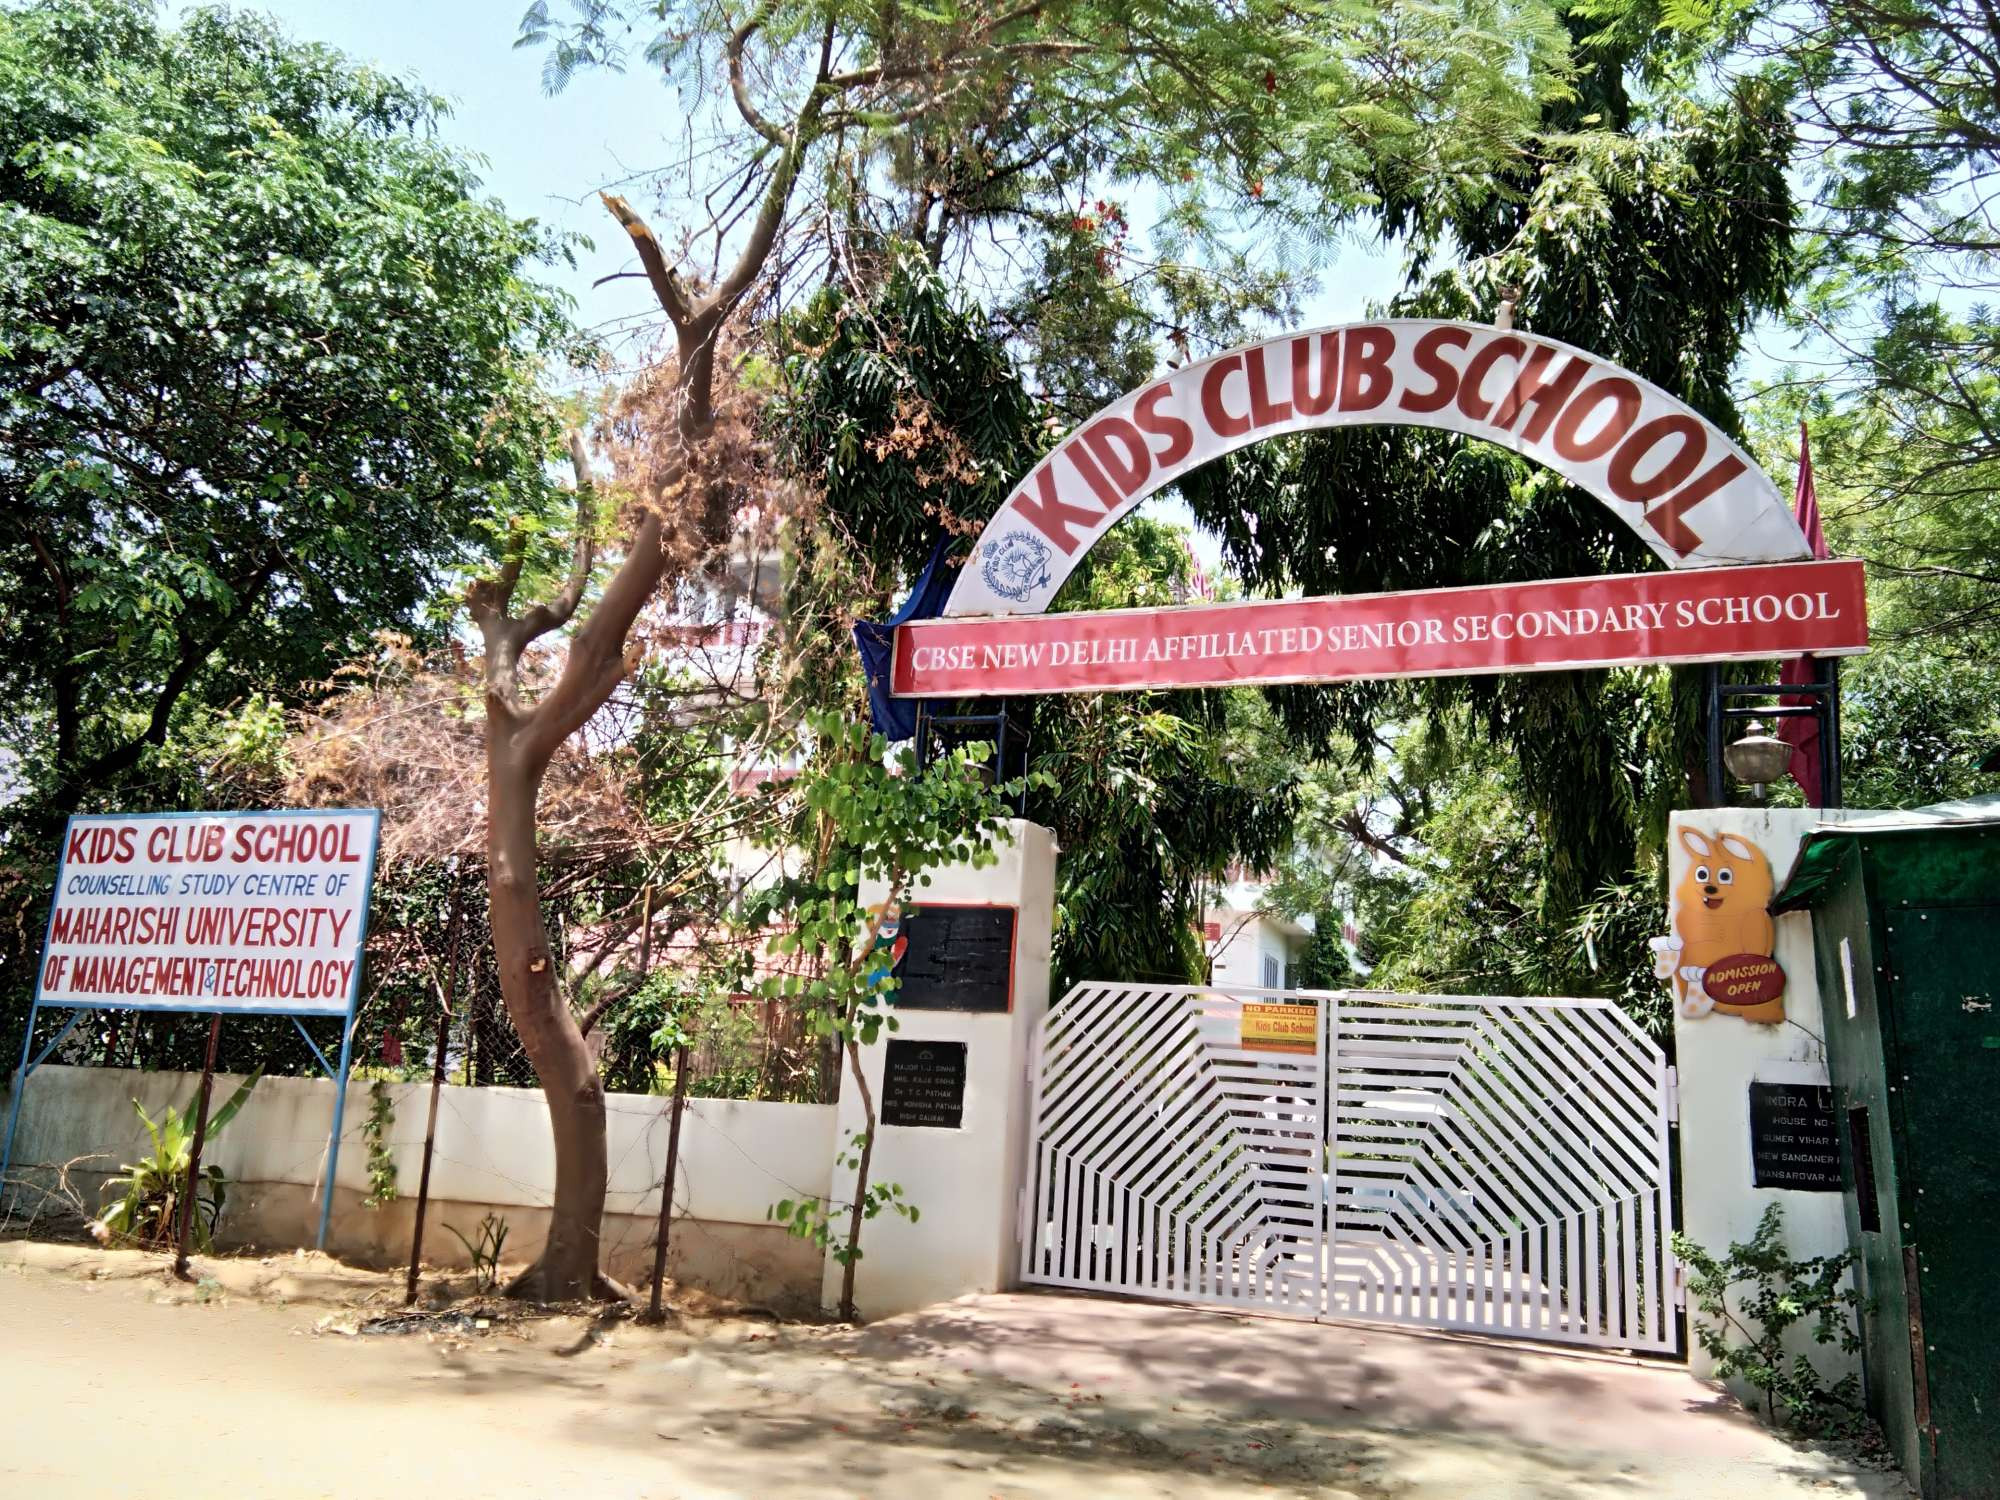 Kids Club School Mansarovar , Jaipur